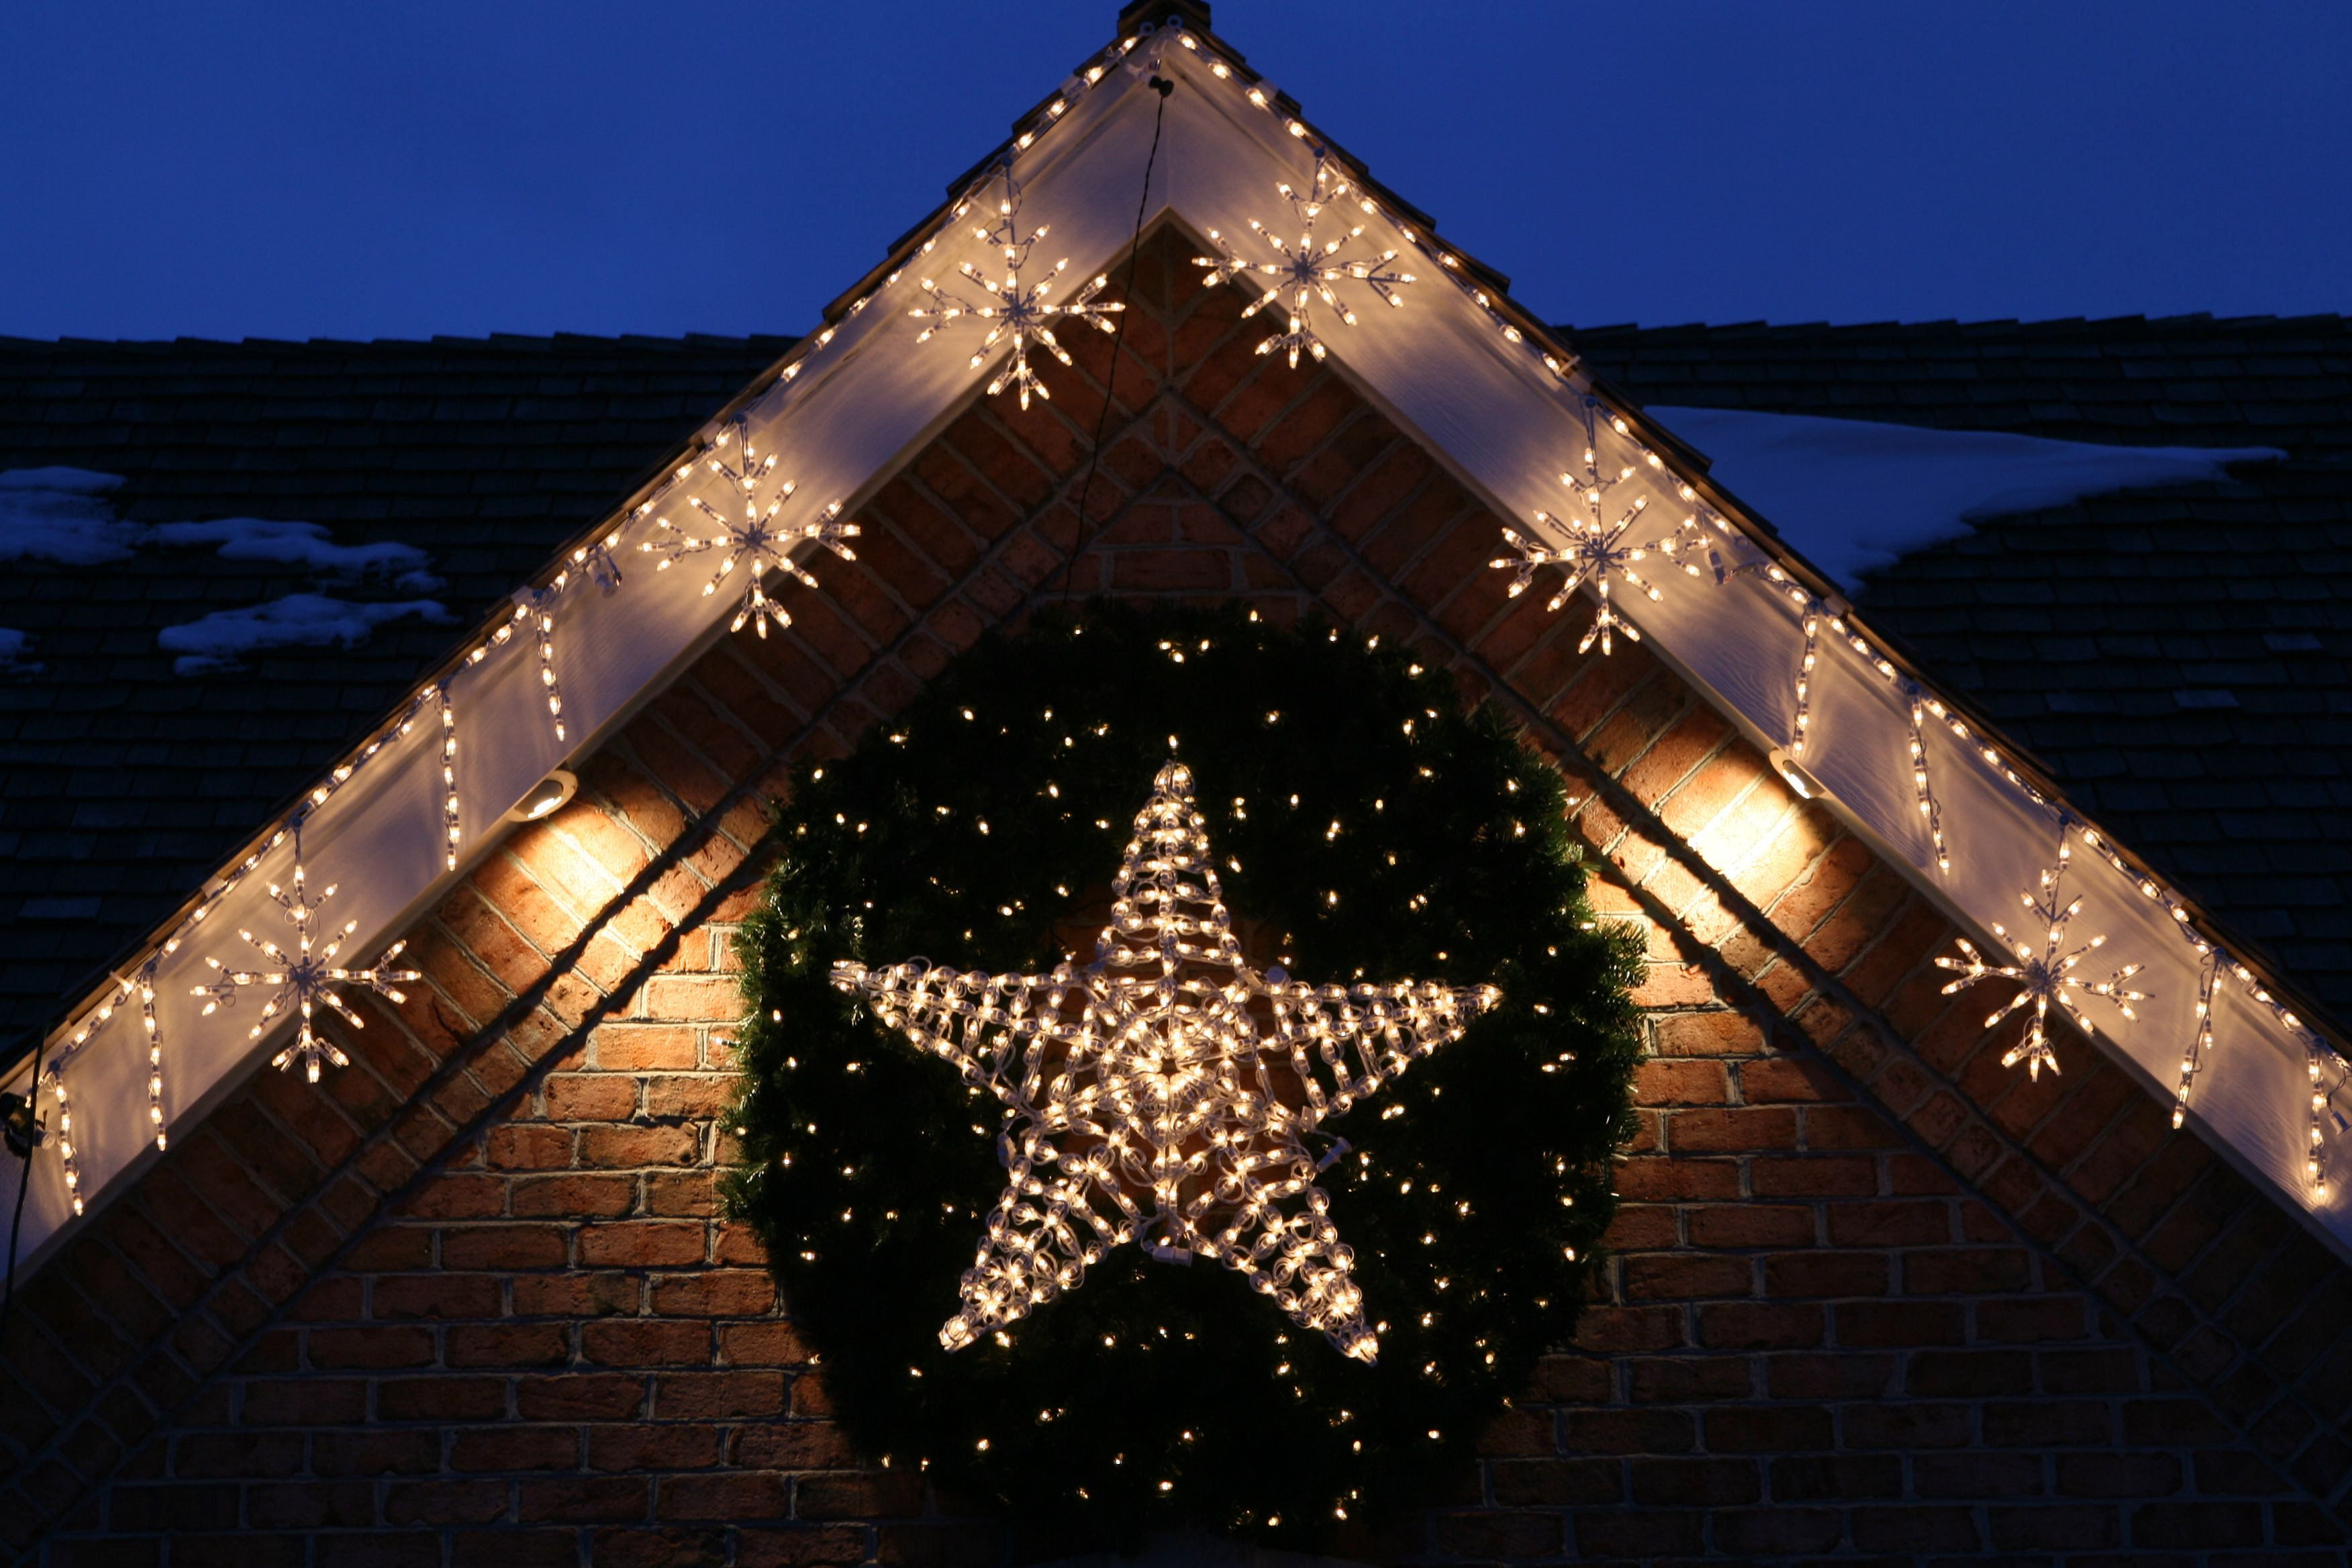 3d lighted led star wreath nashville outdoor lighting perspectives published september 6 2014 at 3504 2336 in aloadofball Choice Image